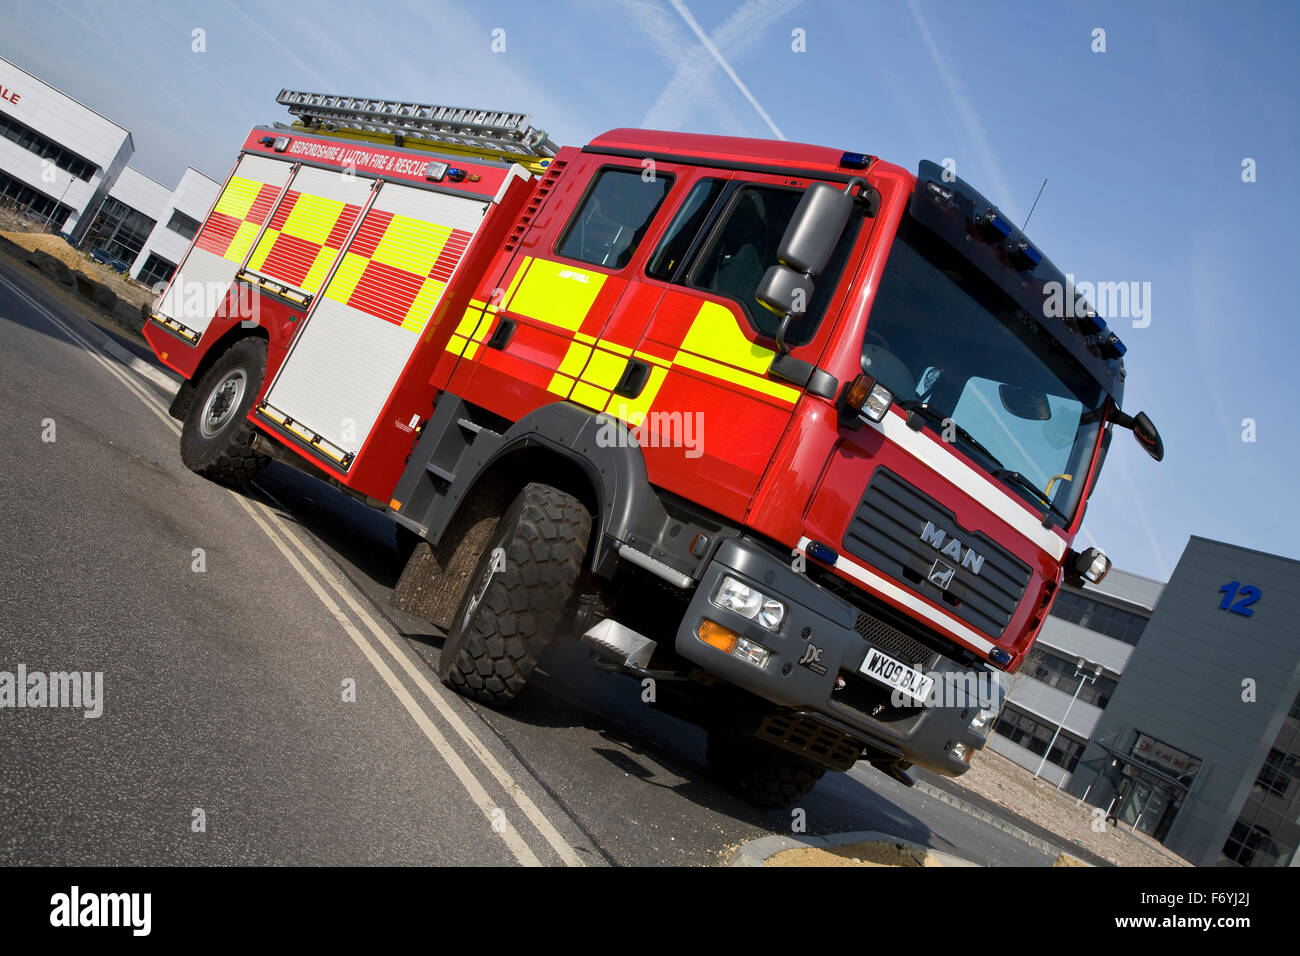 Off Road Fire Truck >> Man Off Road Fire Truck Stock Photo 90346666 Alamy